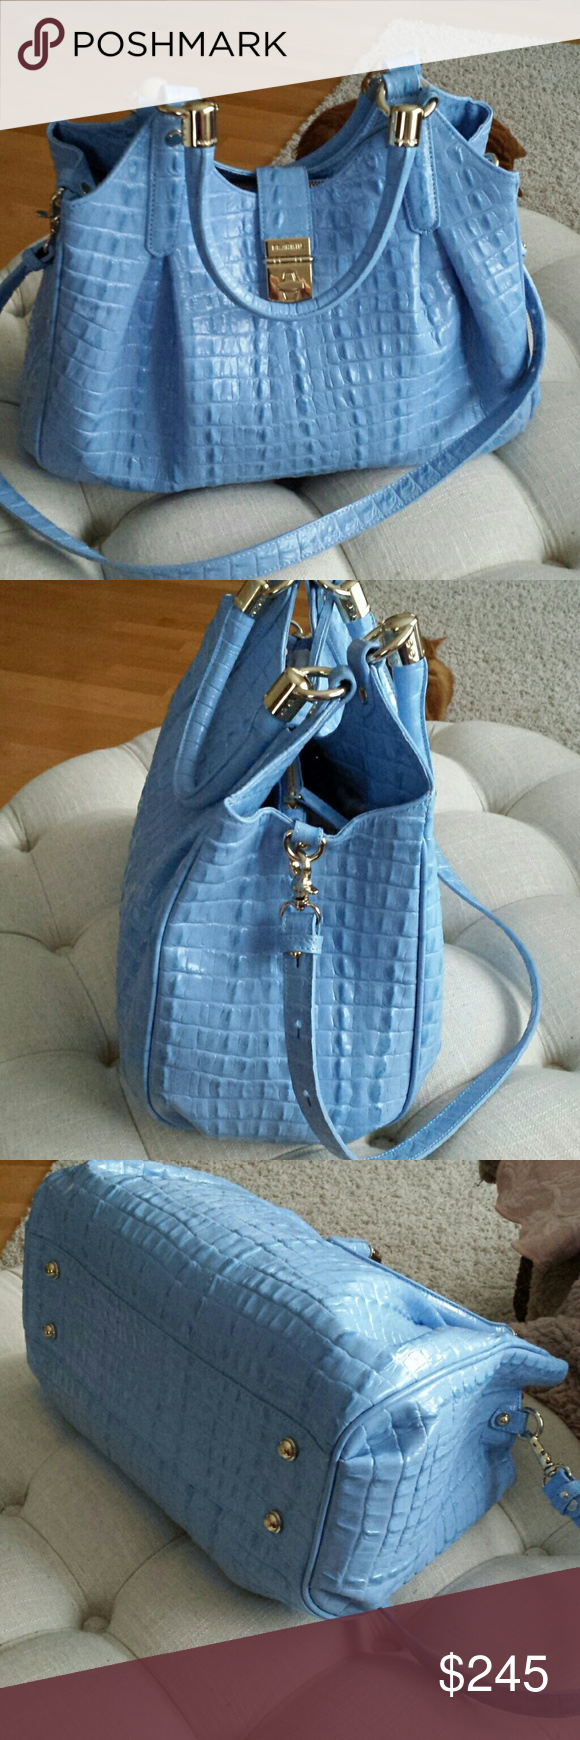 Brahmin Elisa bag Beautiful Brahmin Elisa bag this is a beautiful blue color turn lock closure has a middle zip compartment on one side is two pockets with pen holder the other side has a zip pocket with key fob if it's in excellent condition feet on the bottom extra shoulder length handle beautiful pristine condition no flaws Comes with a dust cover 13.5x10x6approx Brahmin Bags Shoulder Bags